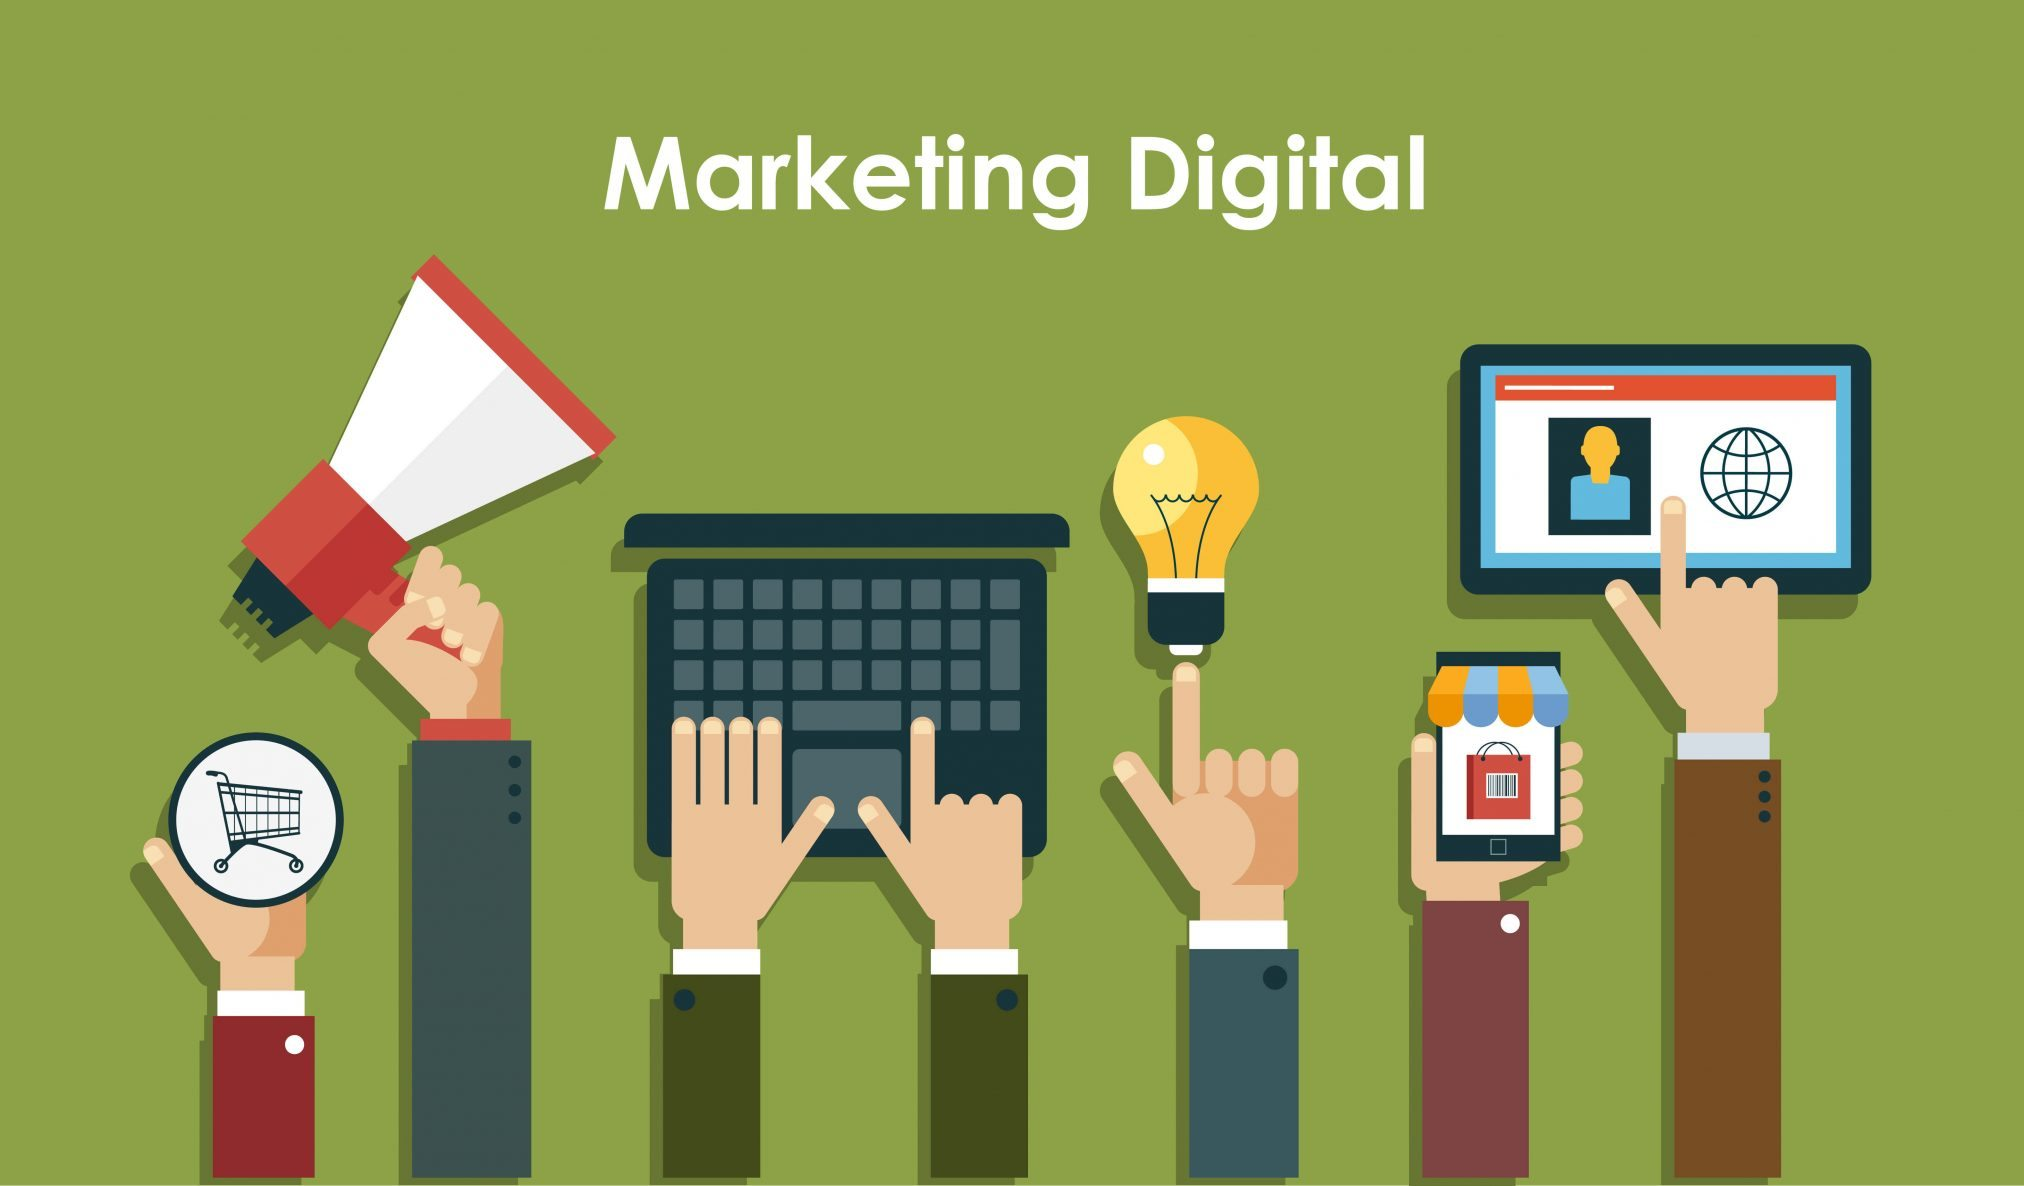 5-acoes-de-marketing-digital-que-toda-empresa-precisa-tomar